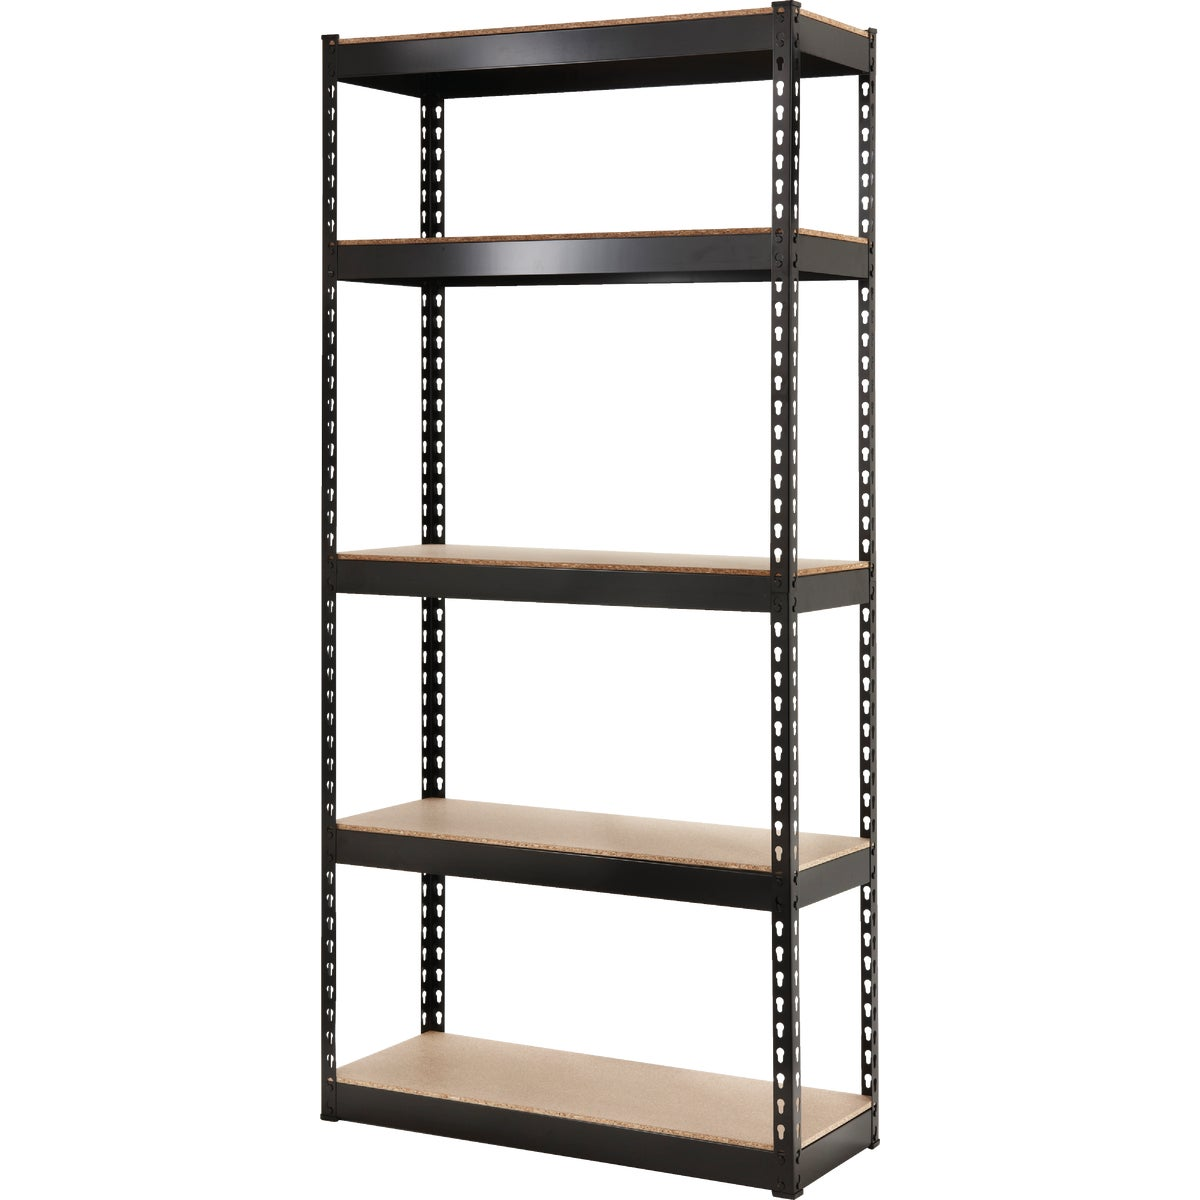 34X14X72 METAL SHELVING - 341472 by Do it Best Global Sourcing